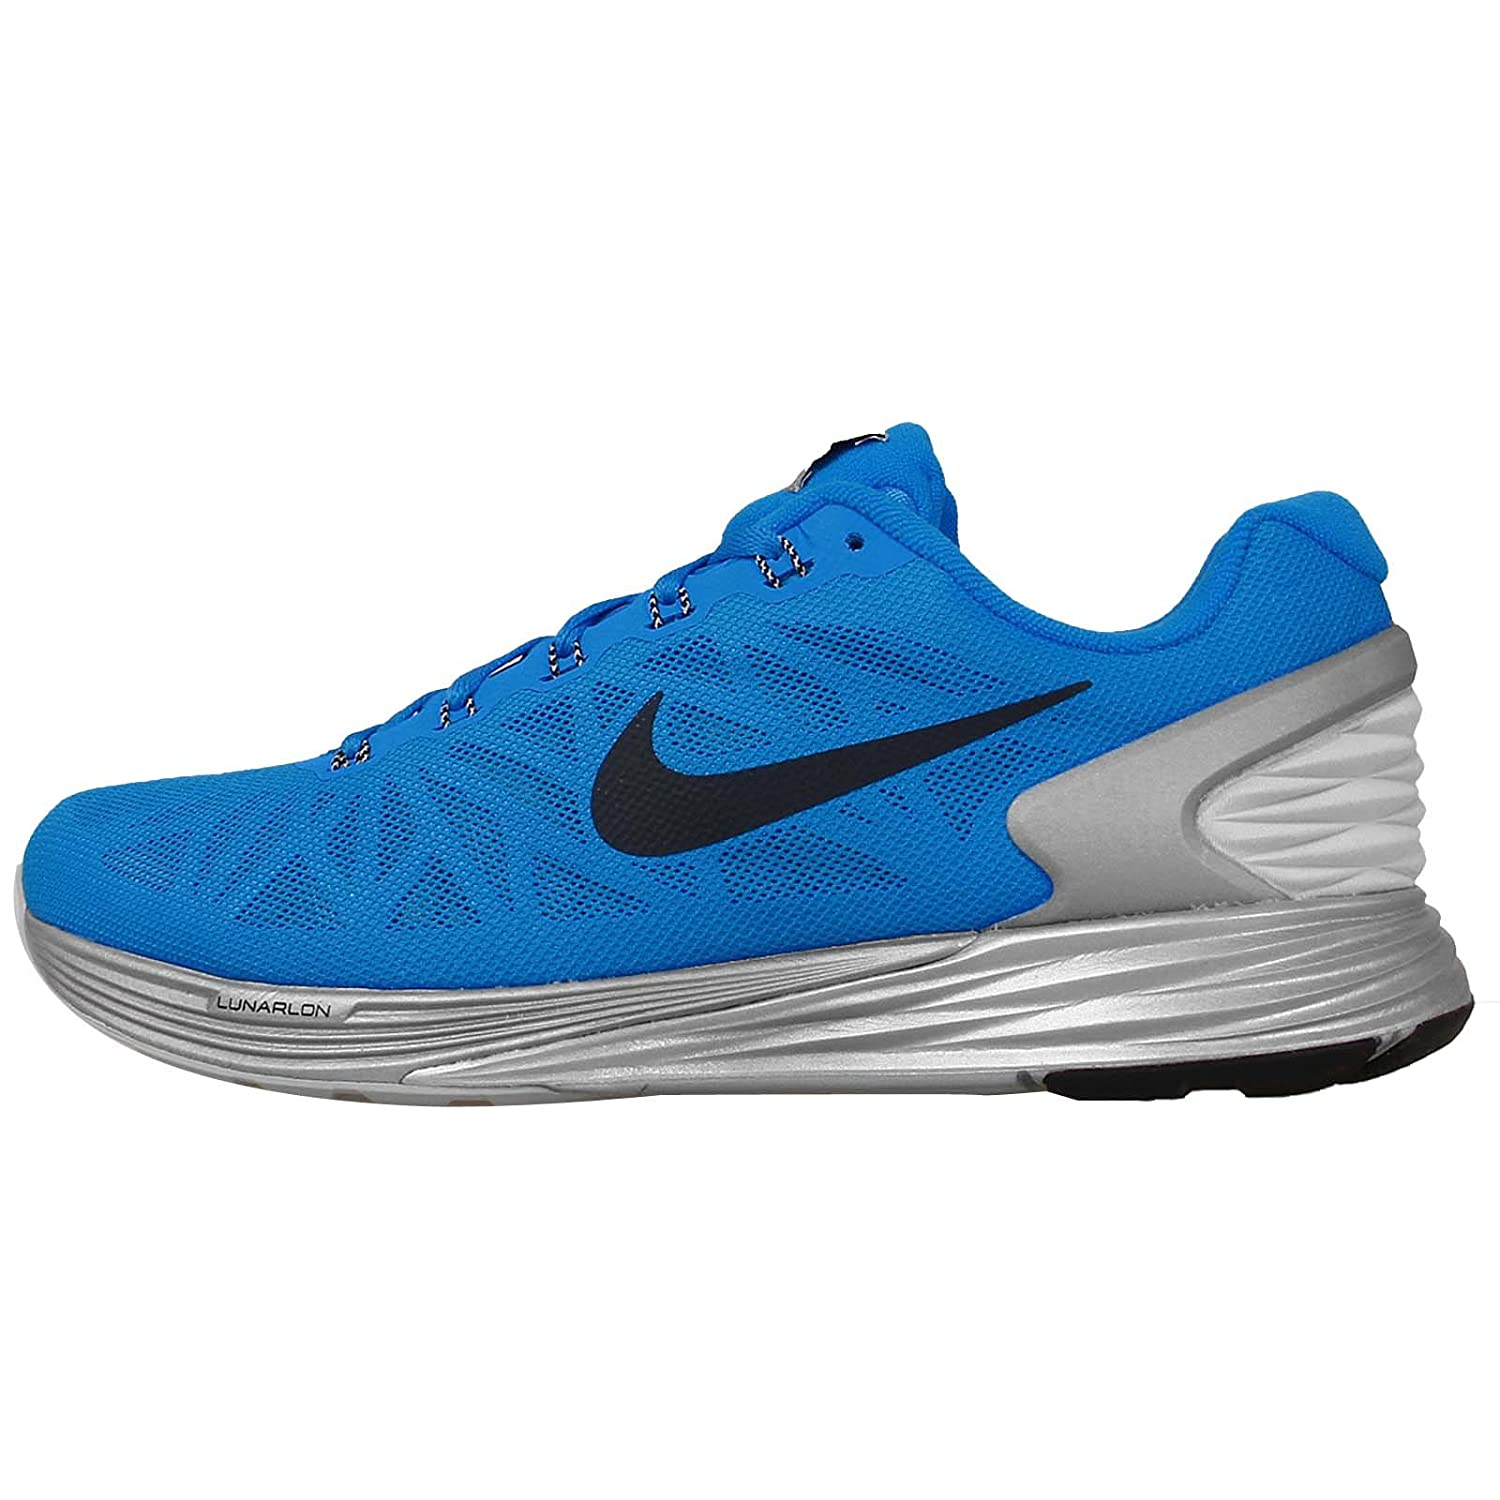 best website f5ae5 50c70 NIKE LUNARGLIDE 6 FLASH 683651 400 MENS RUNNING SNEAKERS 12 US - 11 UK  Amazon.co.uk Shoes  Bags